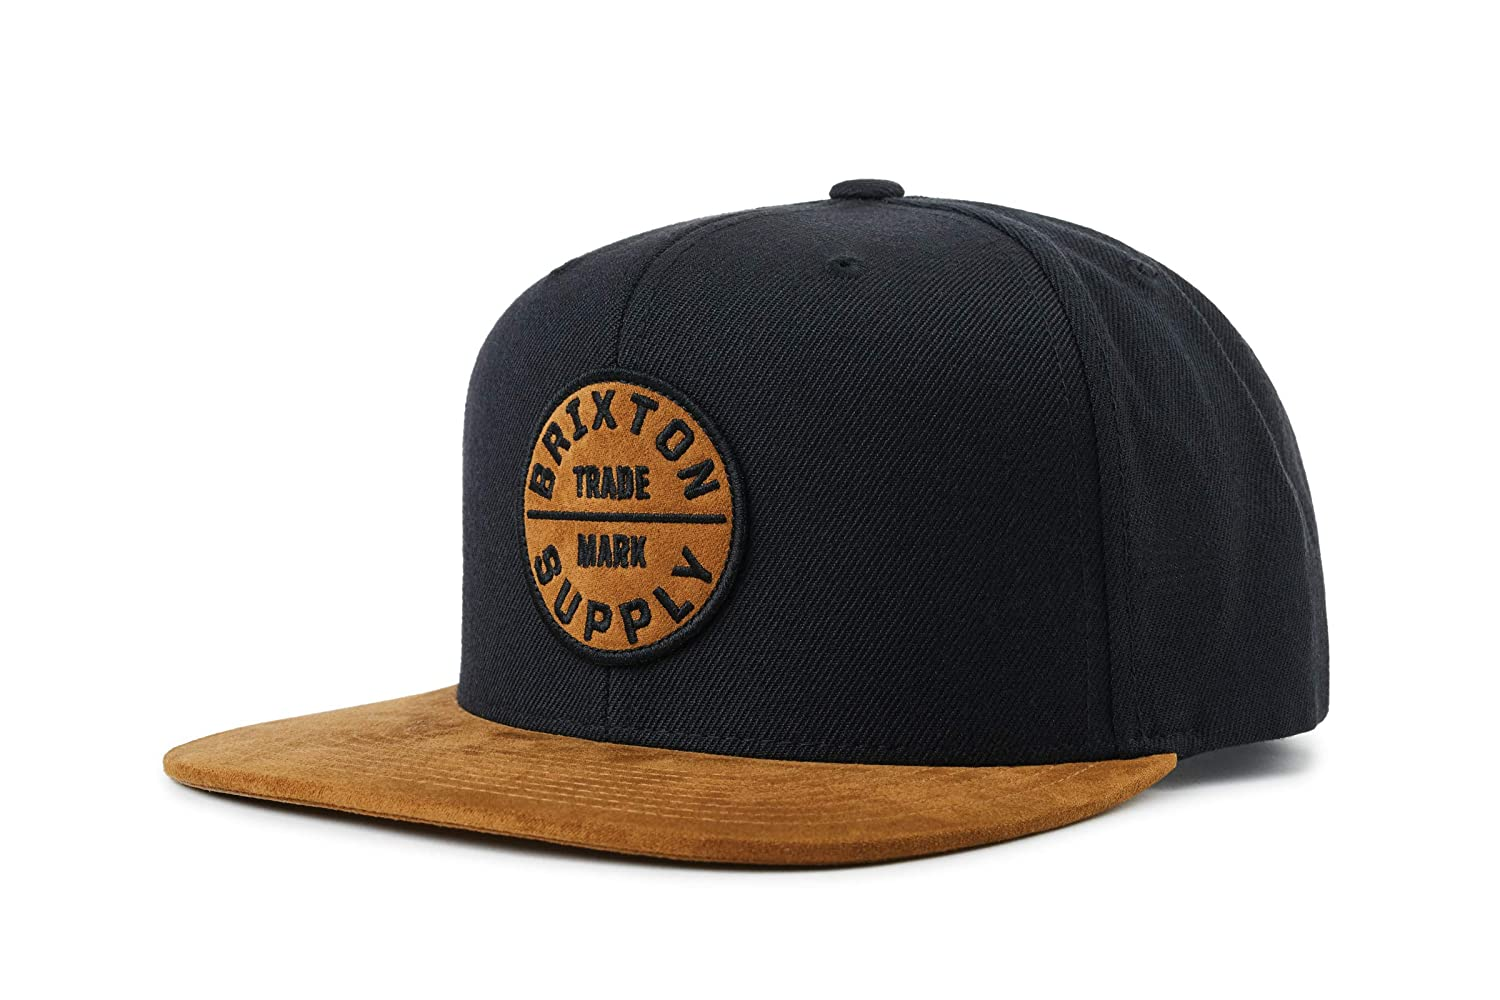 696e82ac54f29 Amazon.com  Brixton Men s Oath III Snapback Cap Copper Black One Size   Clothing